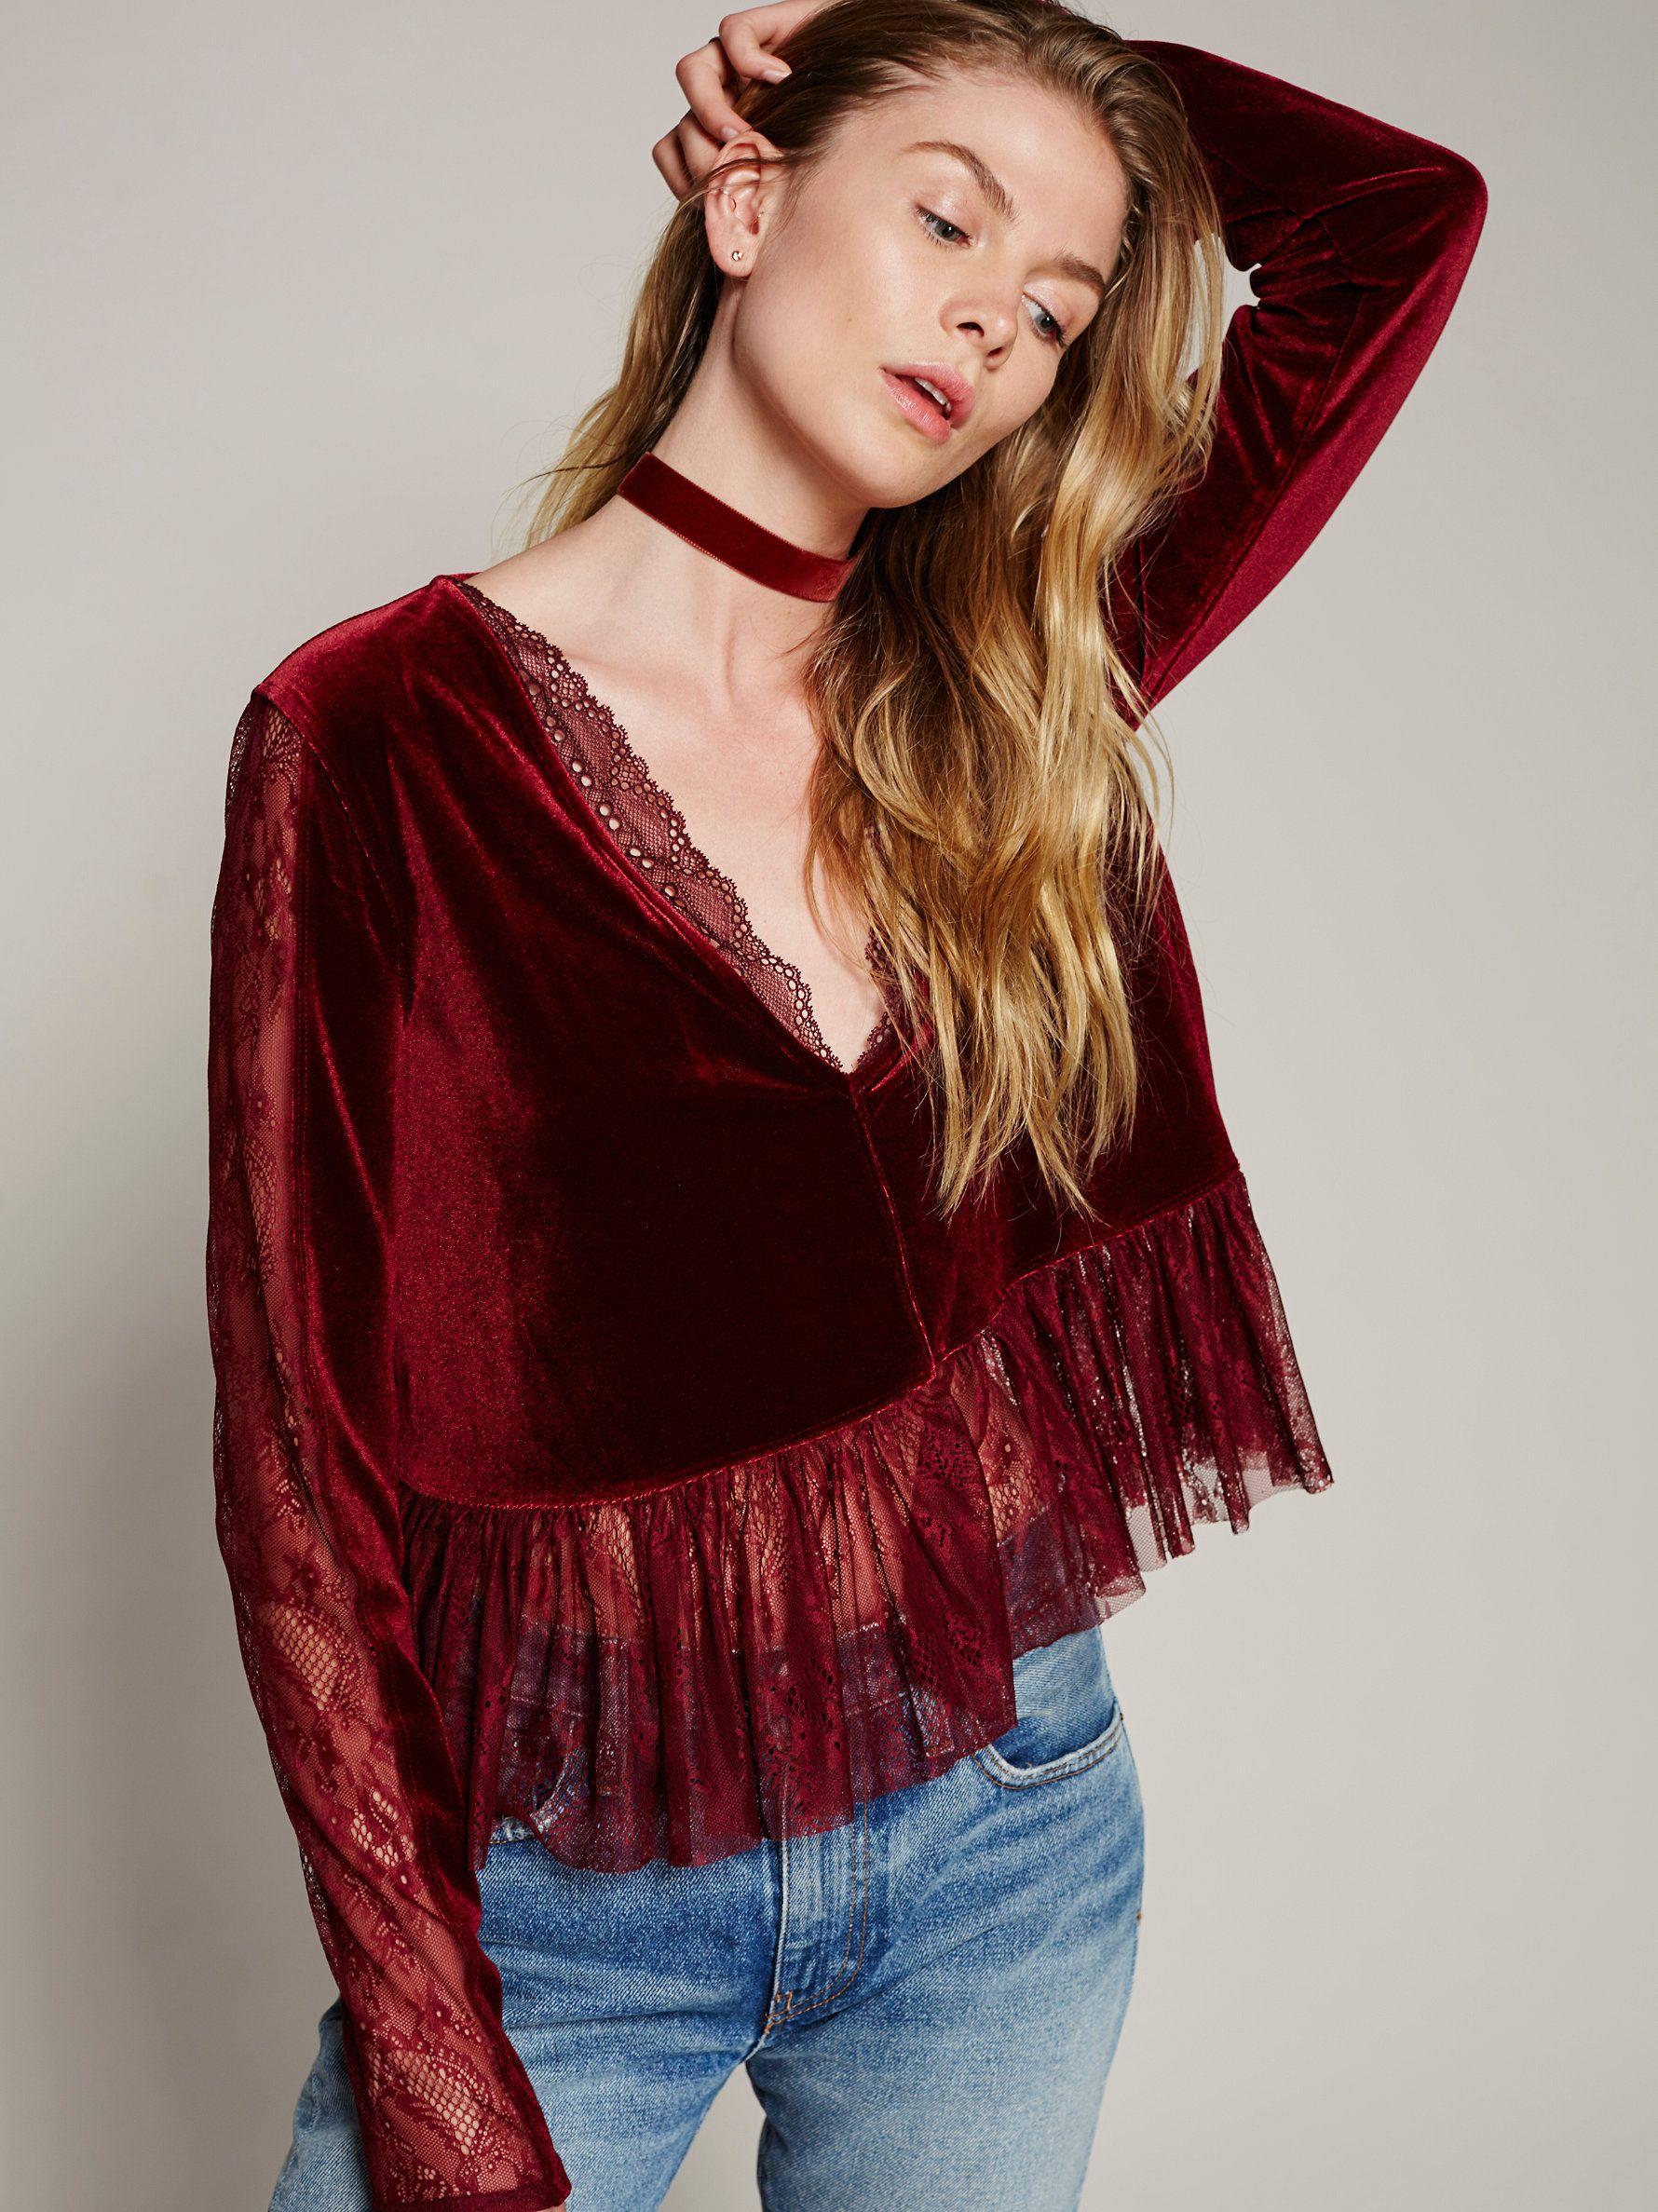 2c62de2627dbd Lolita Top at Free People Clothing Boutique